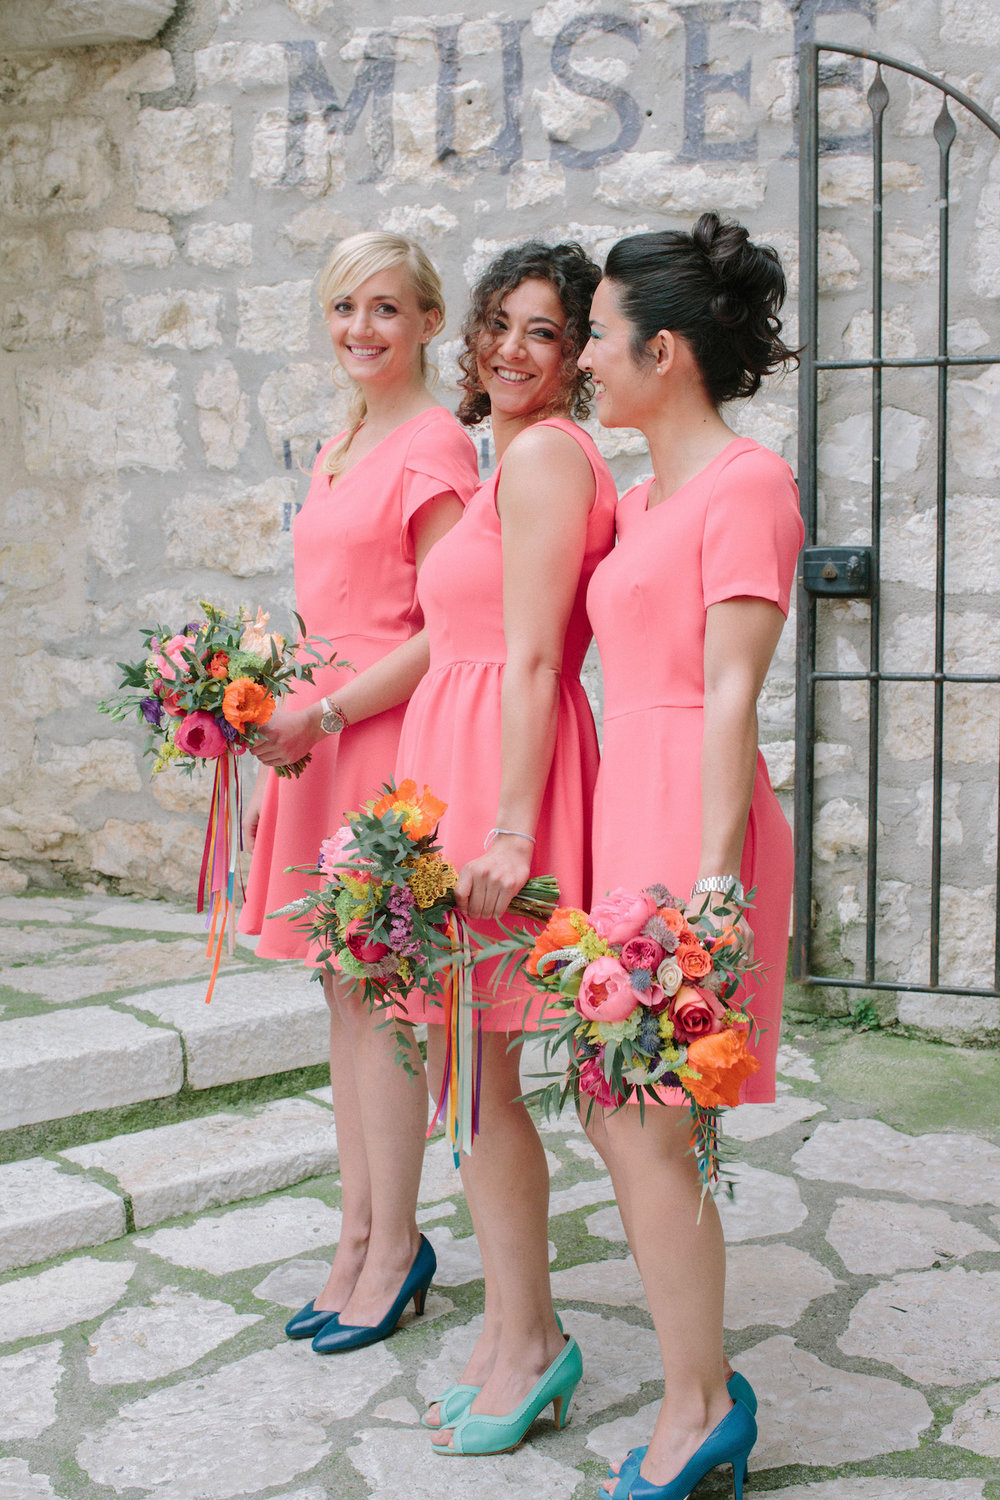 elopement-colorful-©-saya-photography-wedding-photographer-photographe-mariage-saint-paul-vence-rock-my-love-studio-ohlala-french-riviera-dress-bridesmaid-atelier-charlotte-auzou-shoes-alix-de-la-forest